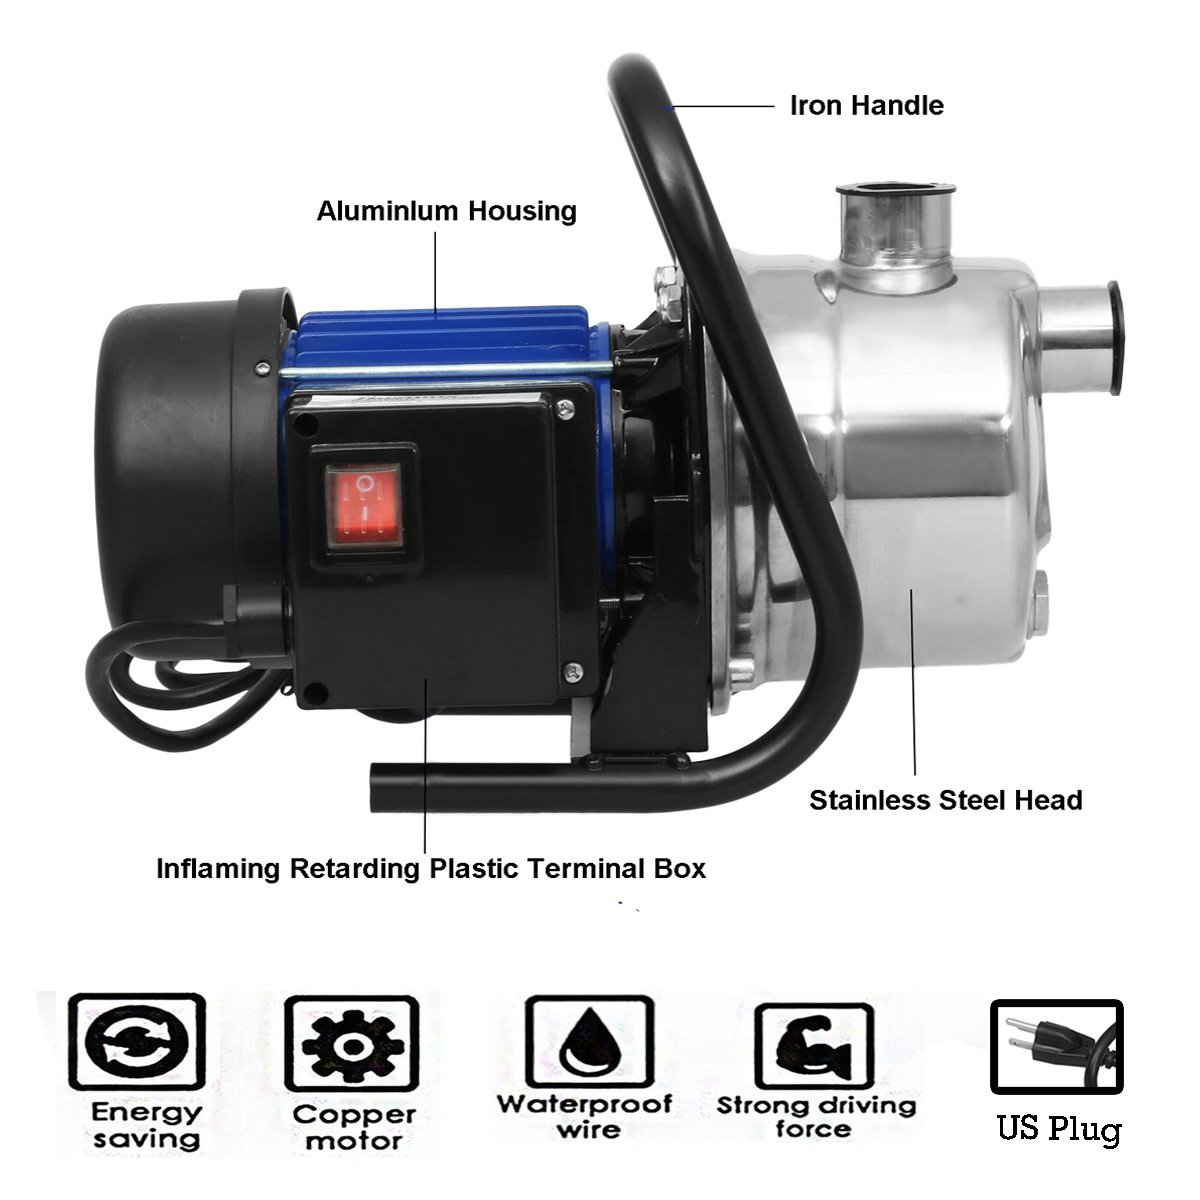 Jaketen 1.6HP Automatic ON/OFF Stainless Shallow Well Pump, 115V Sprinkler Booster Pump or Home Garden Irrigation Water Supply (US STOCK)